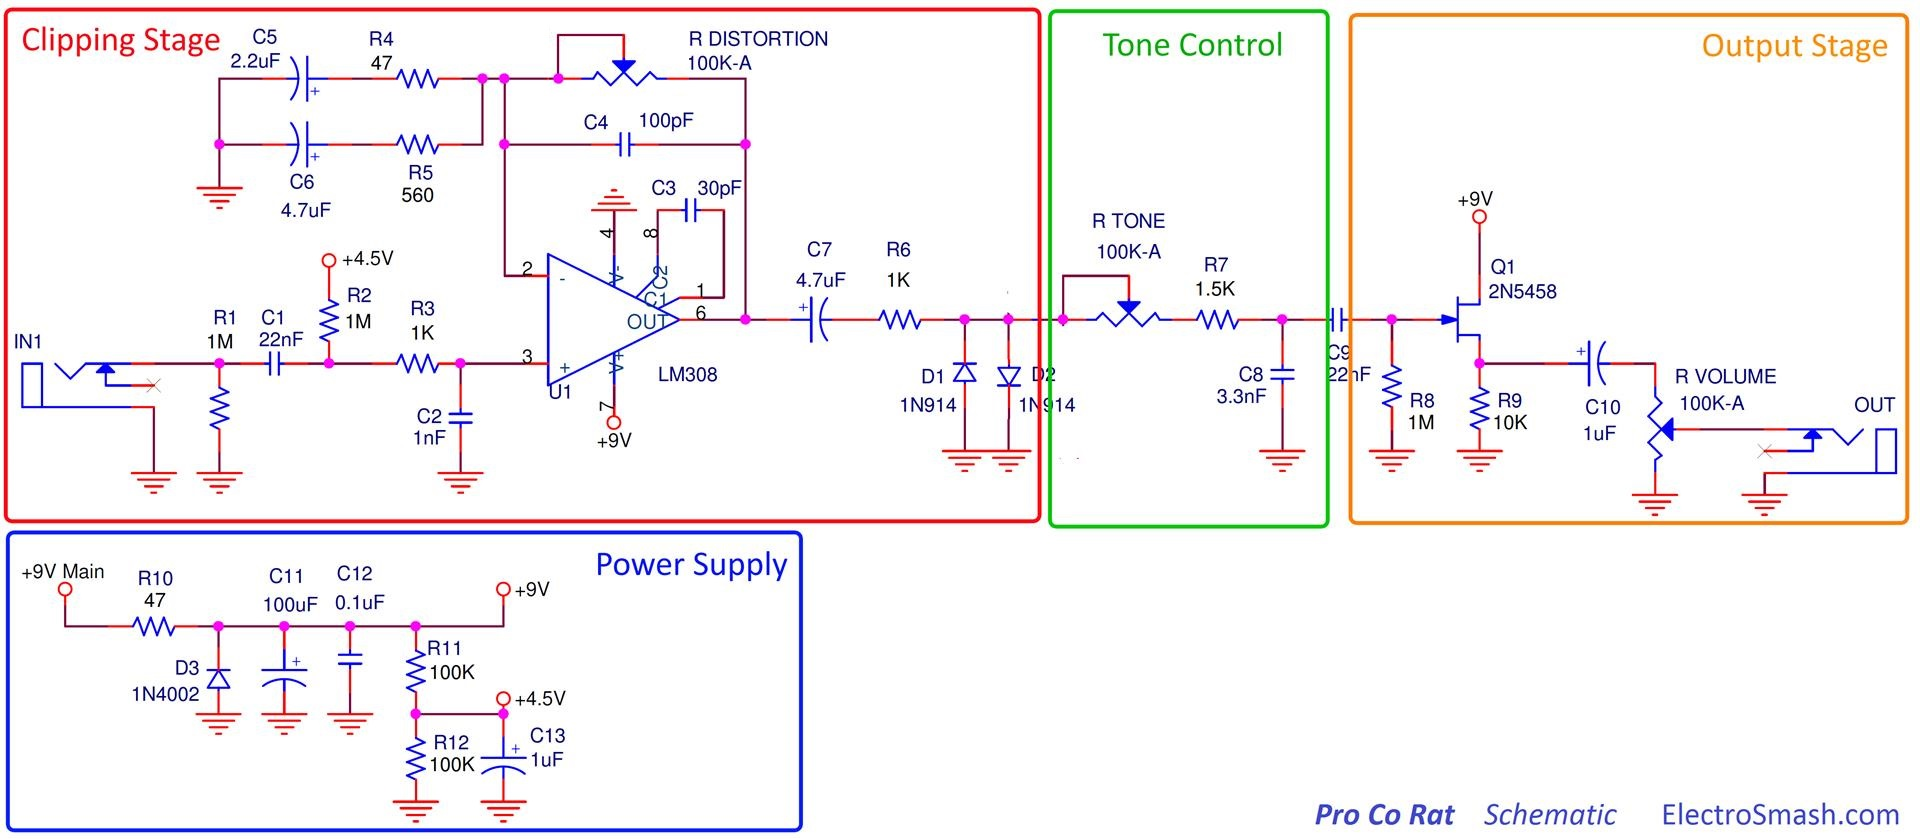 Electrosmash Proco Rat Analysis Op Amp Single Power Supply The Design Is Based On Lm308 Distortion Produced Using A Variable Gain Circuit With Diodes Clipping Waveform